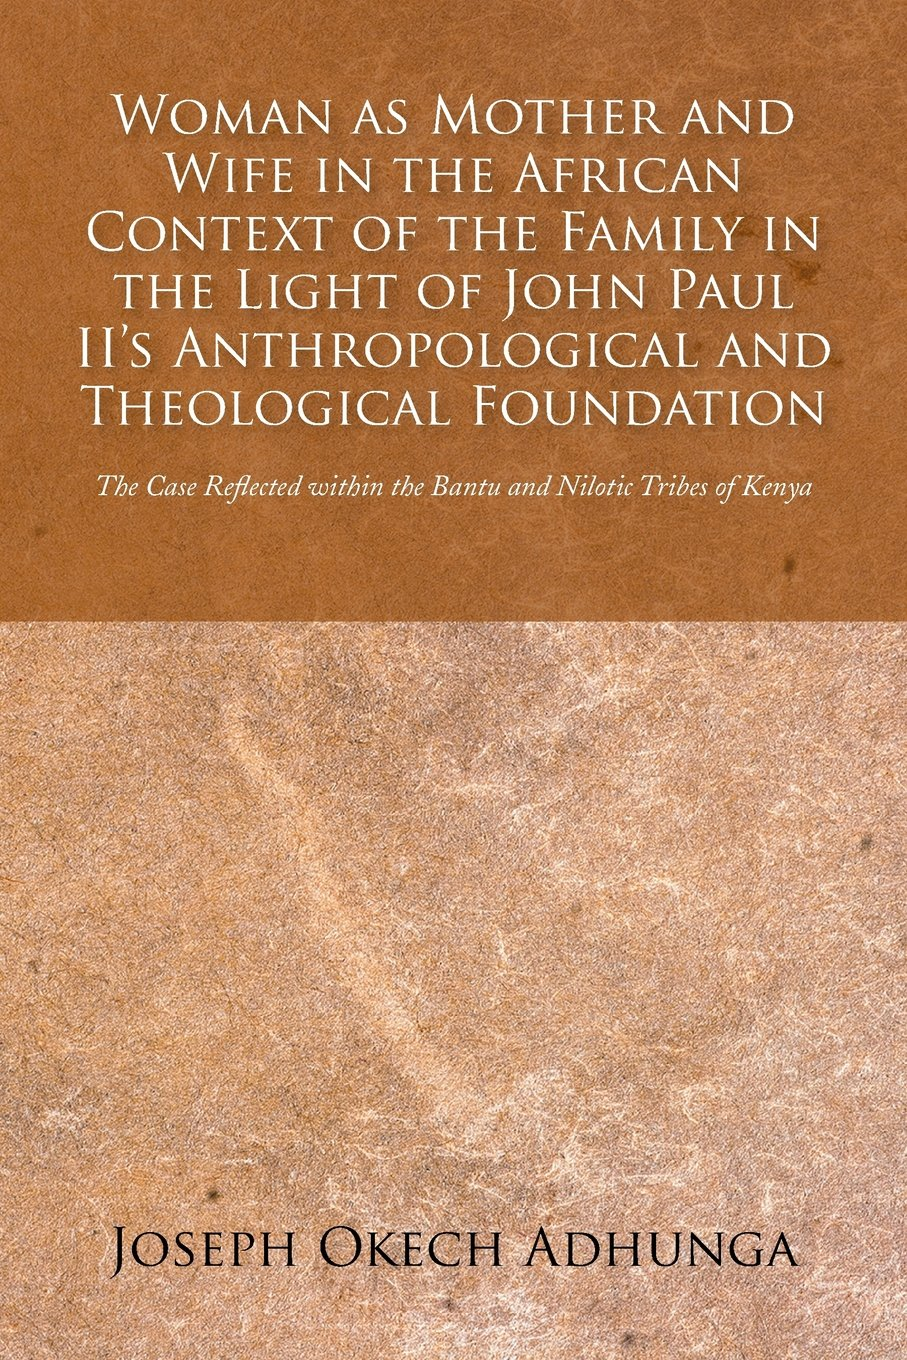 Download Woman as Mother and Wife in the African Context of the Family in the Light of John Paul II's Anthropological and Theological Foundation: The Case Reflected within the Bantu and Nilotic Tribes of Kenya ebook